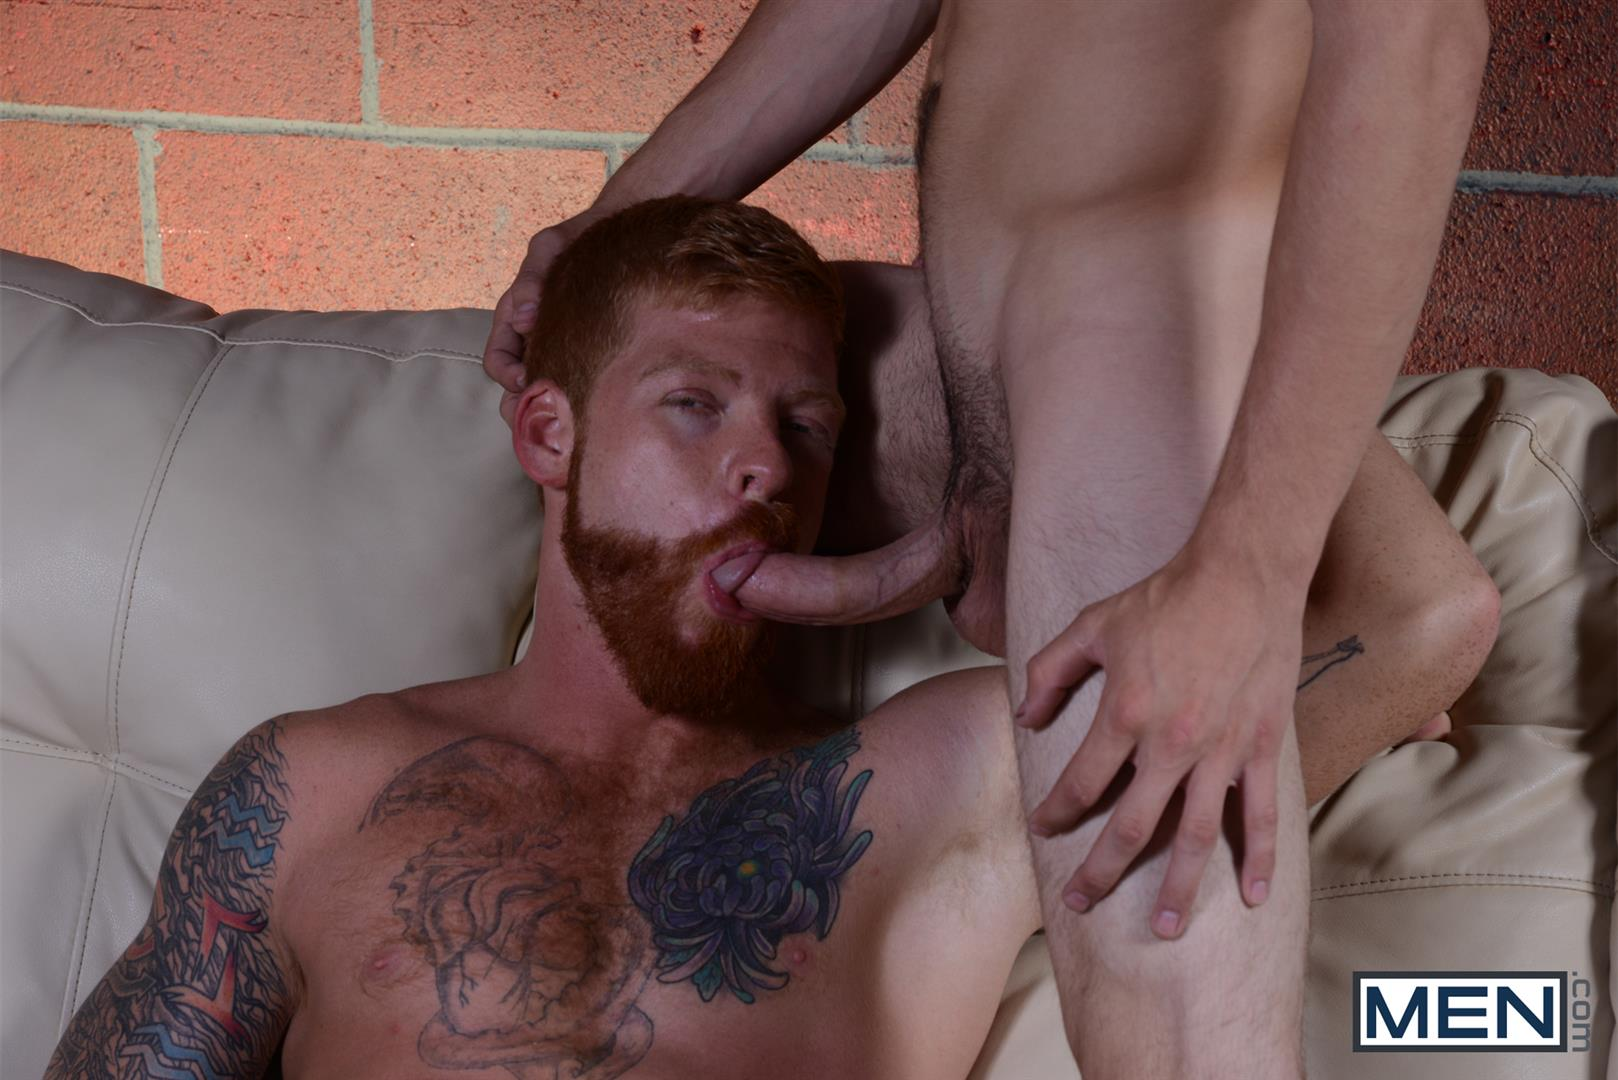 Men Drill My Hole Bennett Anthony and Johnny Rapid Hairy Redhead Fucking A Twink Amateur Gay Porn 08 Johnny Rapid Getting Fucked by Redhead Bennett Anthony